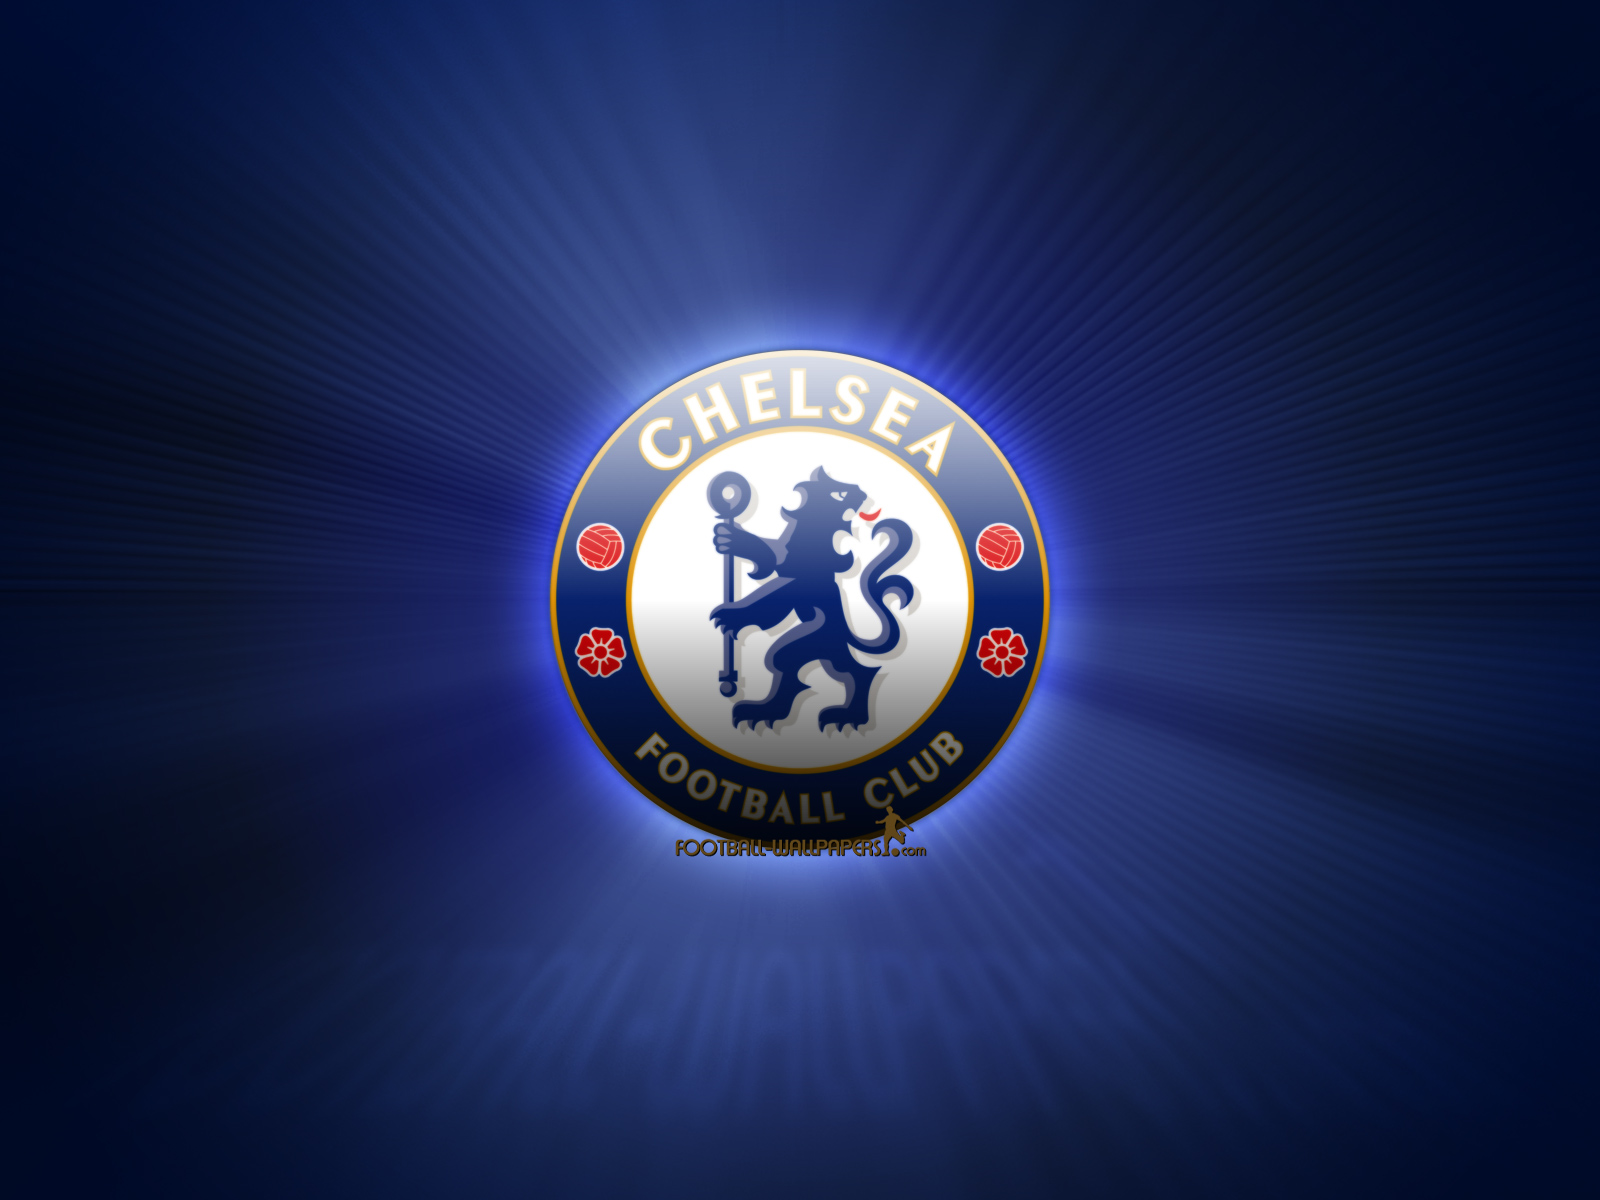 Chelsea Fc Wallpapers HD HD Wallpapers Backgrounds Photos Pictures 1600x1200